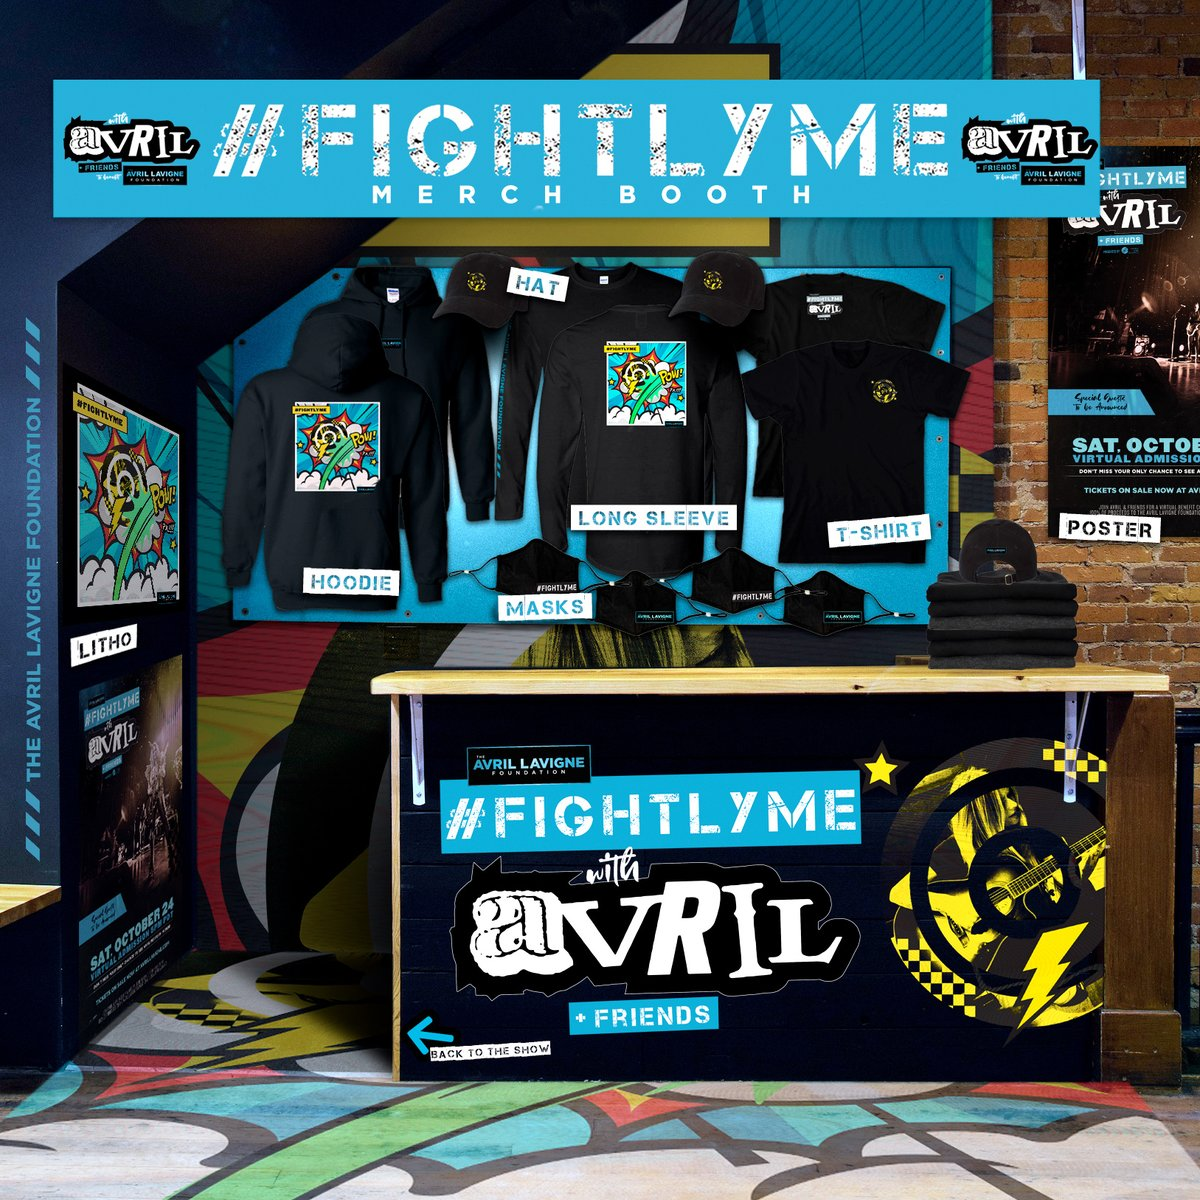 WE'RE SO EXCITED FOR #FIGHTLYME WITH AVRIL & FRIENDS THIS WEEKEND THAT WE COULDN'T WAIT TO GIVE YOU A SNEAK PEEK AT THE LIMITED-EDITION VIRTUAL MERCH BOOTH. GET YOUR MERCH NOW AT  BUY NOW!!